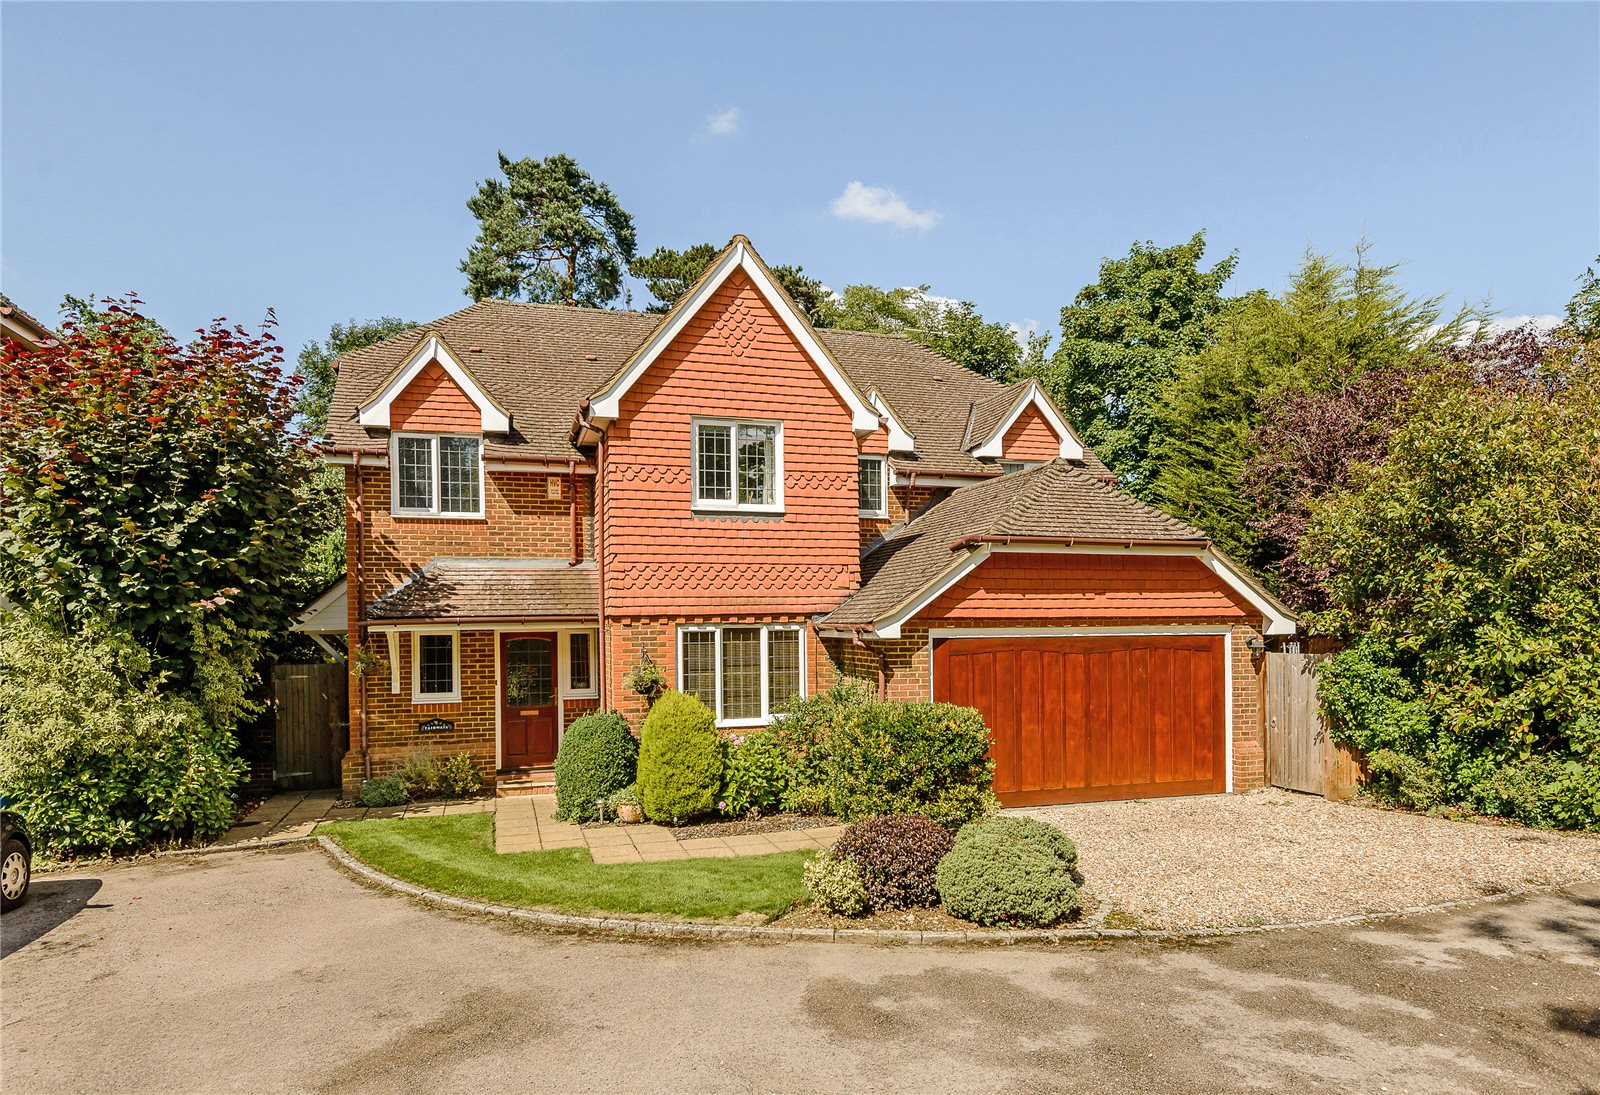 Single Family Home for Sale at Winkfield Row, Winkfield, Berkshire, RG42 Berkshire, England